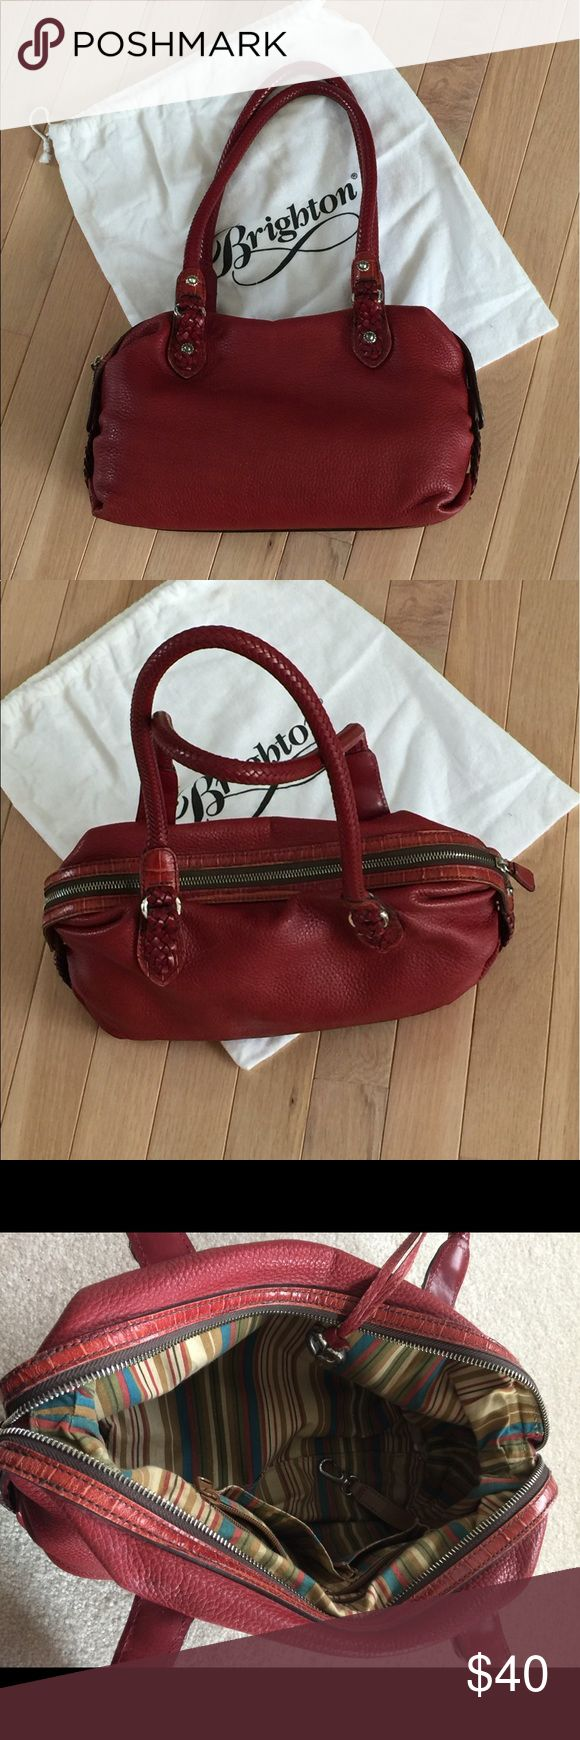 Red Brighton Shoulder Bag Red Brighton shoulder bag recently cleaned and conditioned at Brighton Store. There are three pockets inside (one large zippered and two open pockets). Also a key clip. Gently used and in good condition. Brighton Bags Shoulder Bags